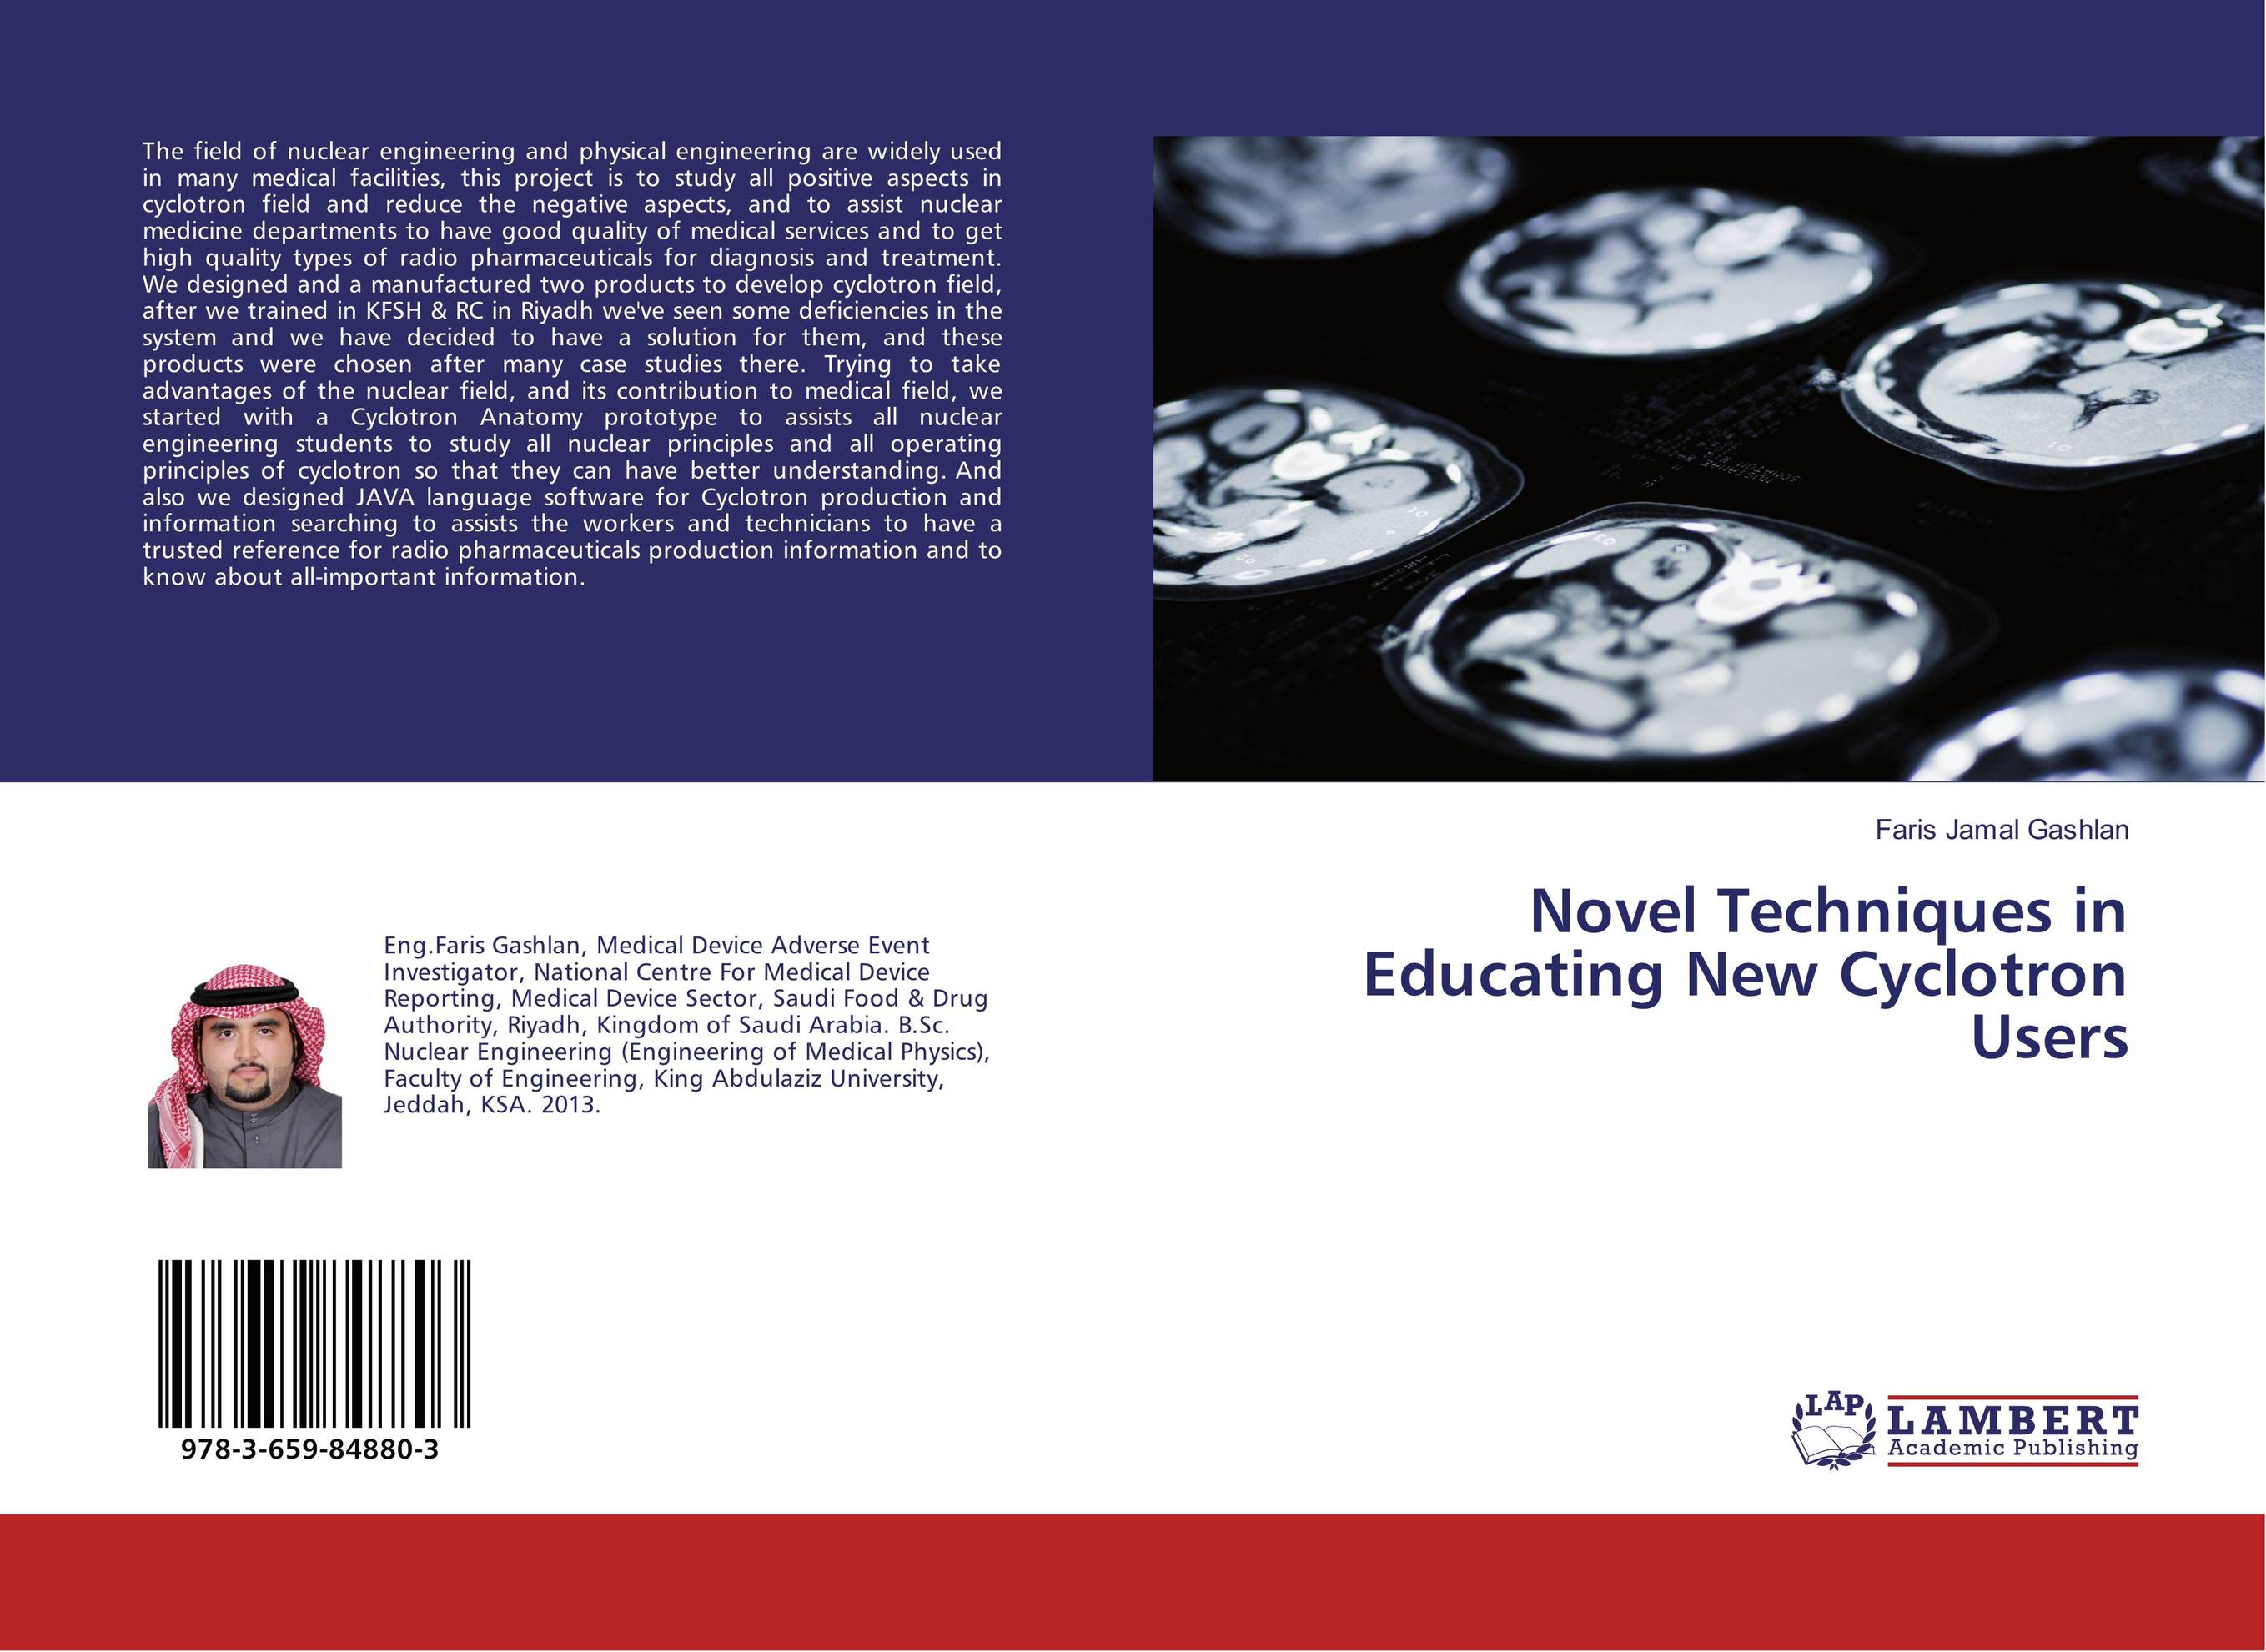 Novel Techniques in Educating New Cyclotron Users